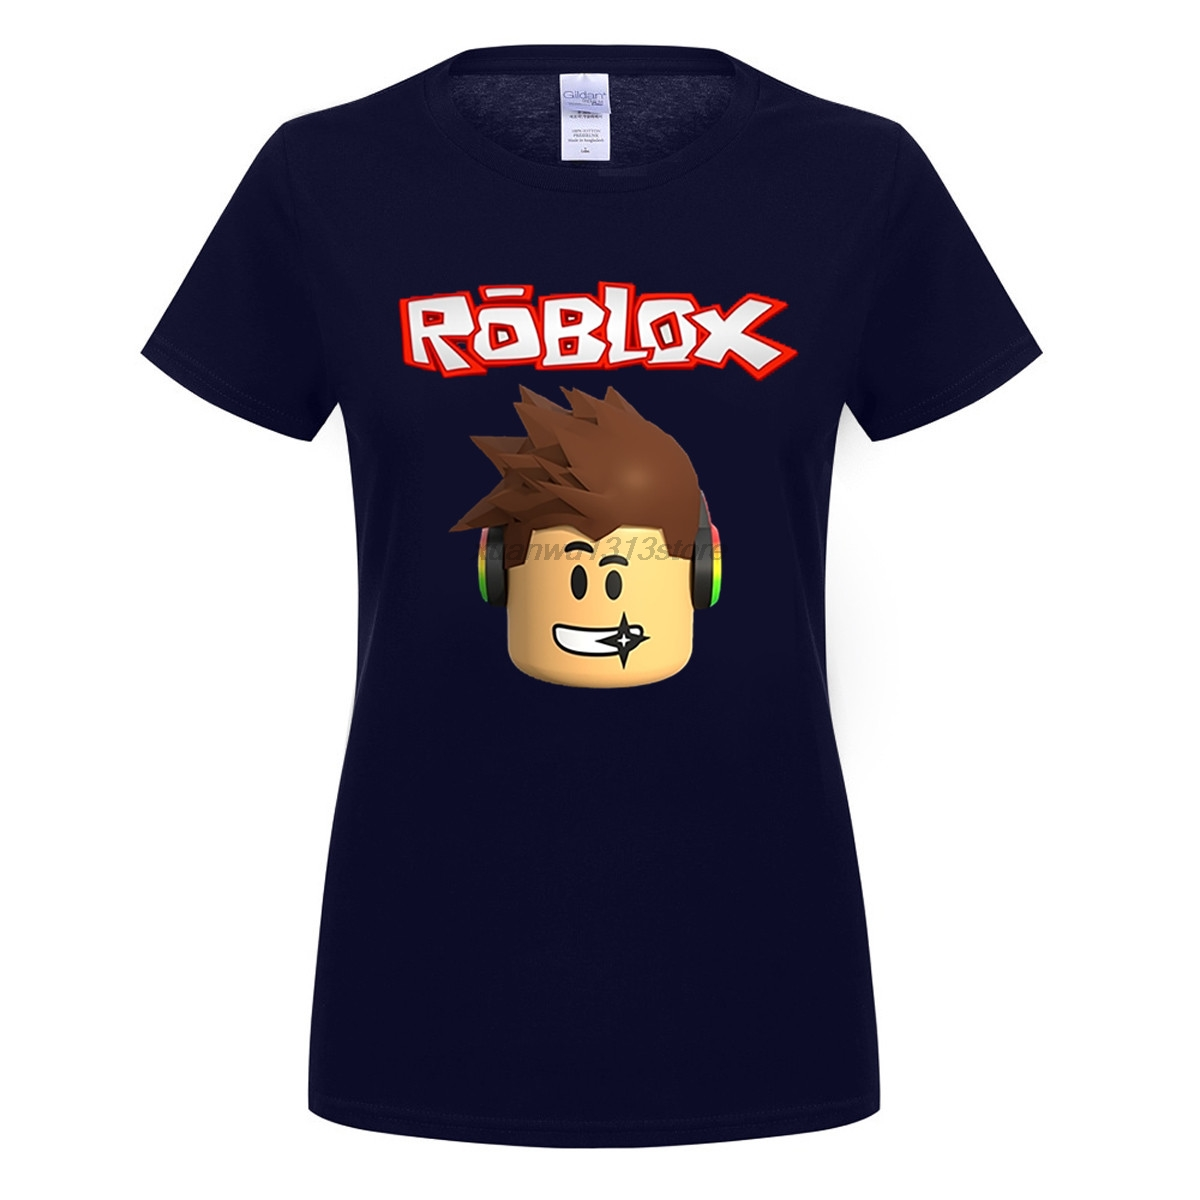 gildan roblox character head adult t shirt cool normal loose t shirt women short sleeve tshirt teenage personality tee shirt in t shirts from womens